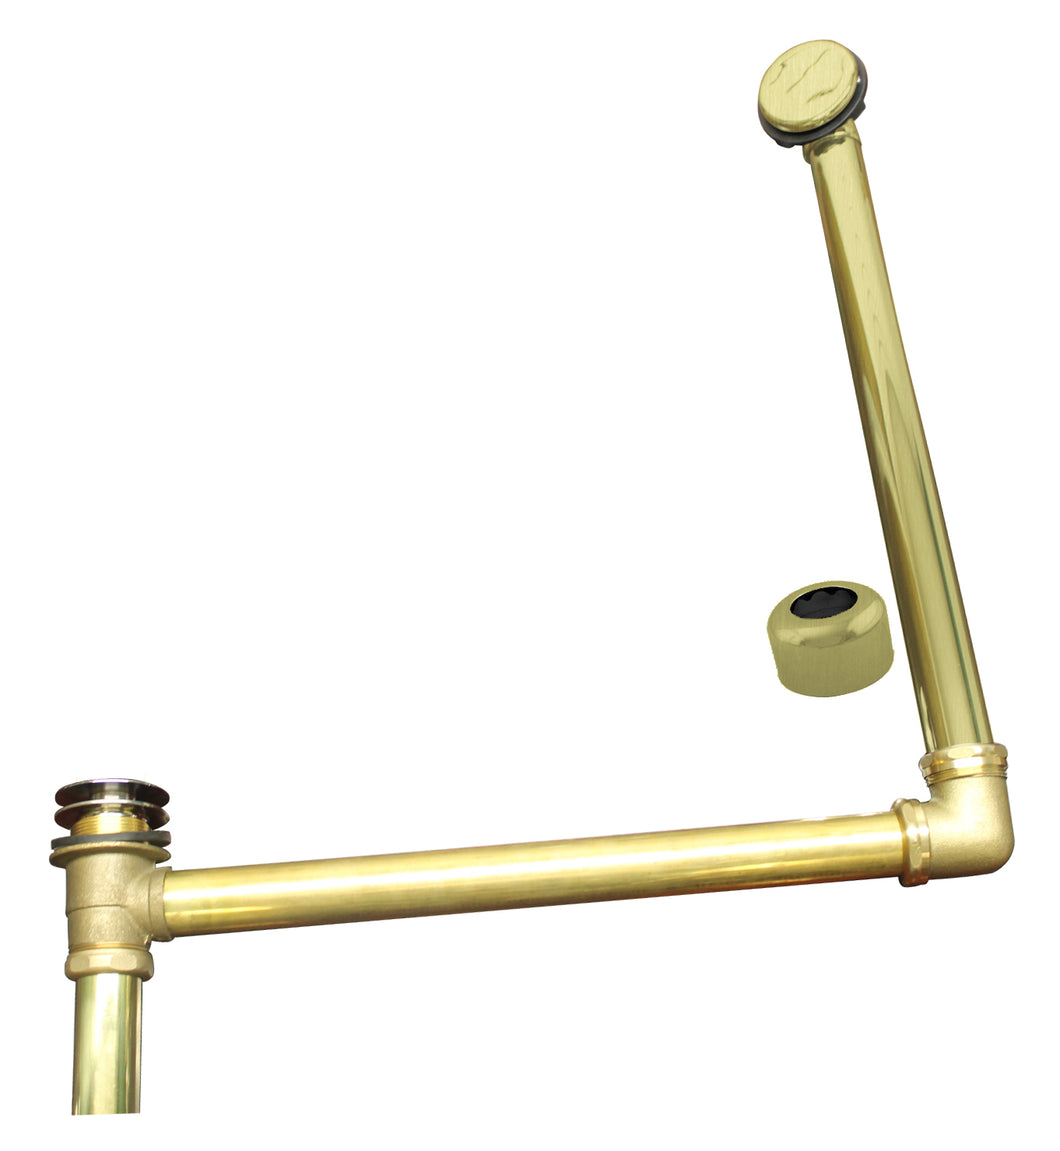 Westbrass 7932420HRDC Westbrass ABS/Brass Semi-Exposed Waste & Overflow with Tip-Toe Drain